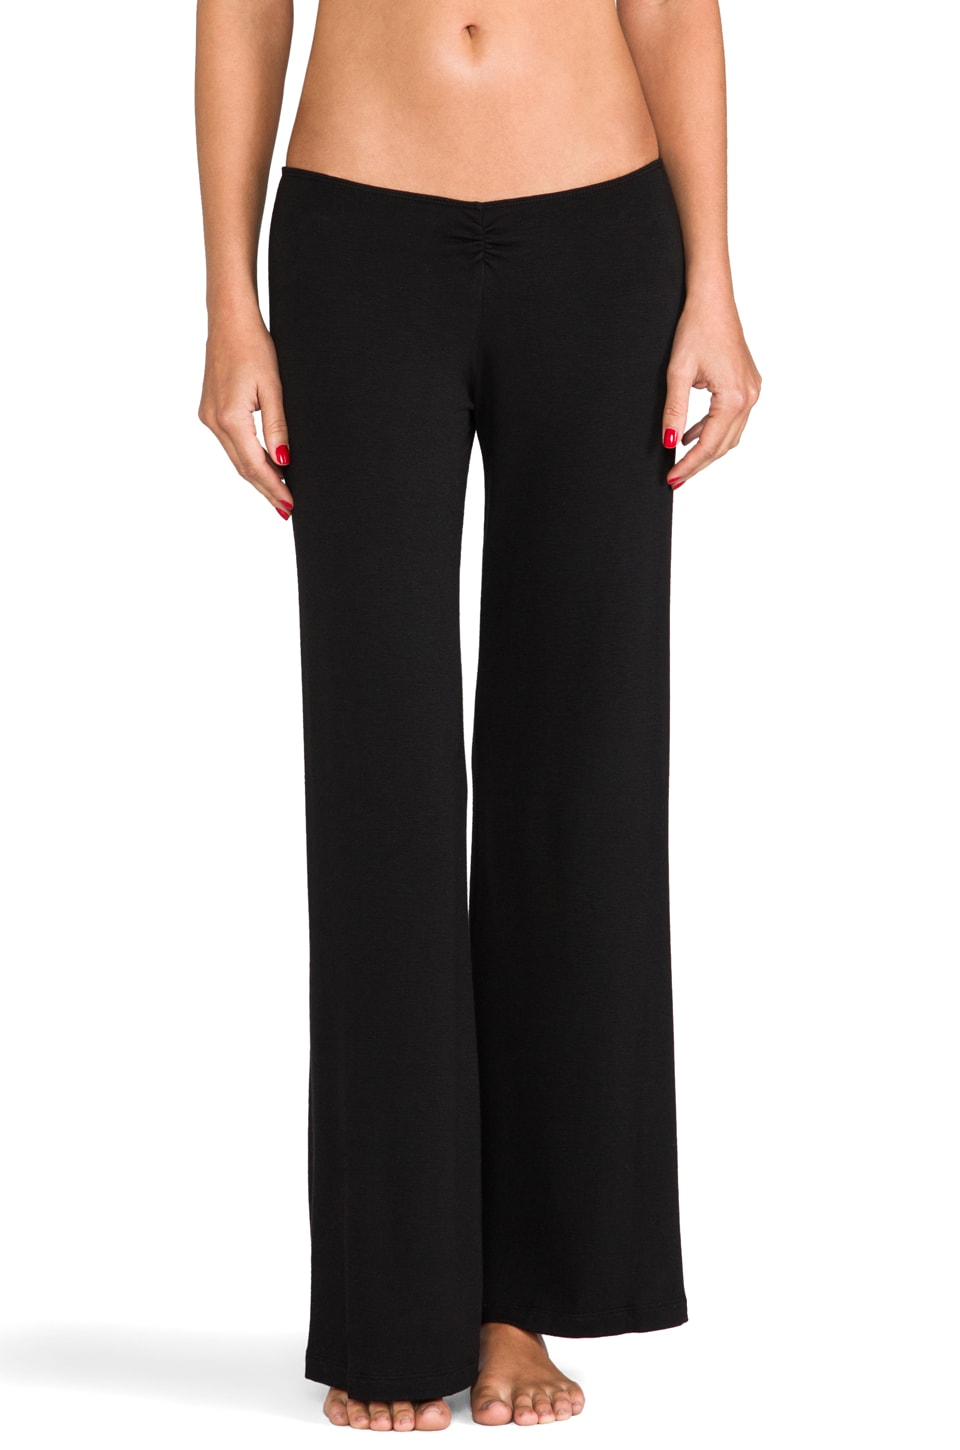 eberjey Sadie Cinched Pant in Black